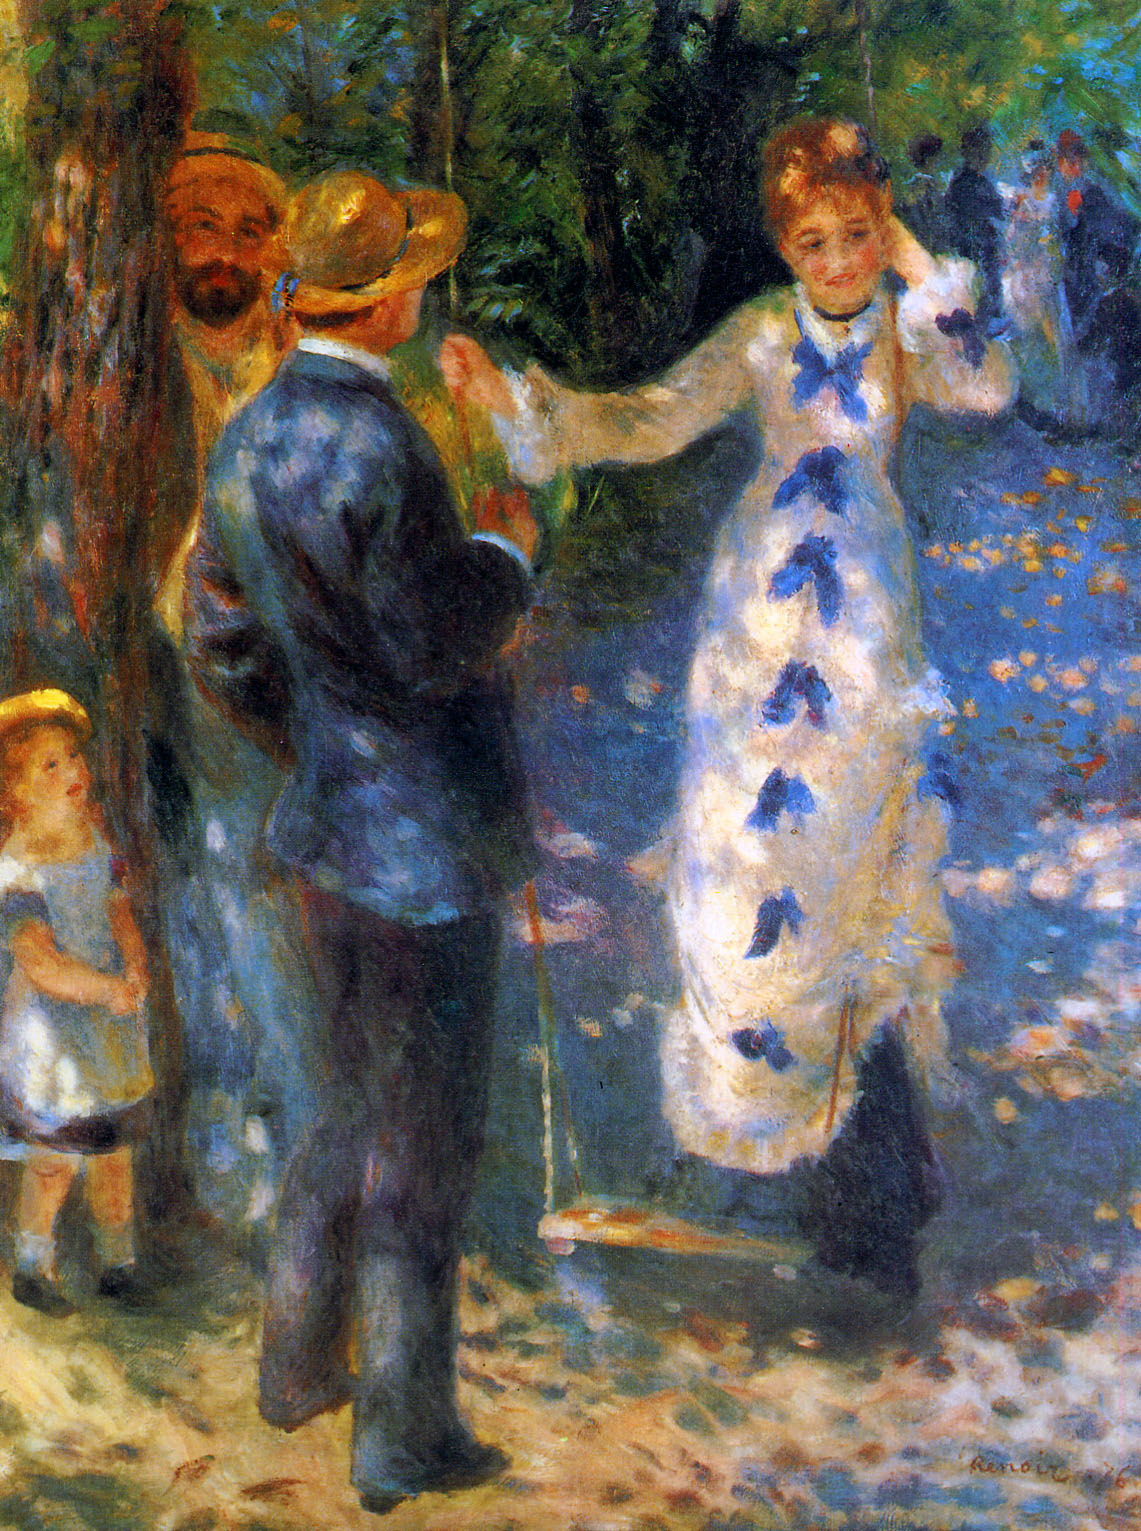 Pierre-Auguste Renoir, The Swing  (1876) was Jenny's assigned artwork from the Orsay Museum.